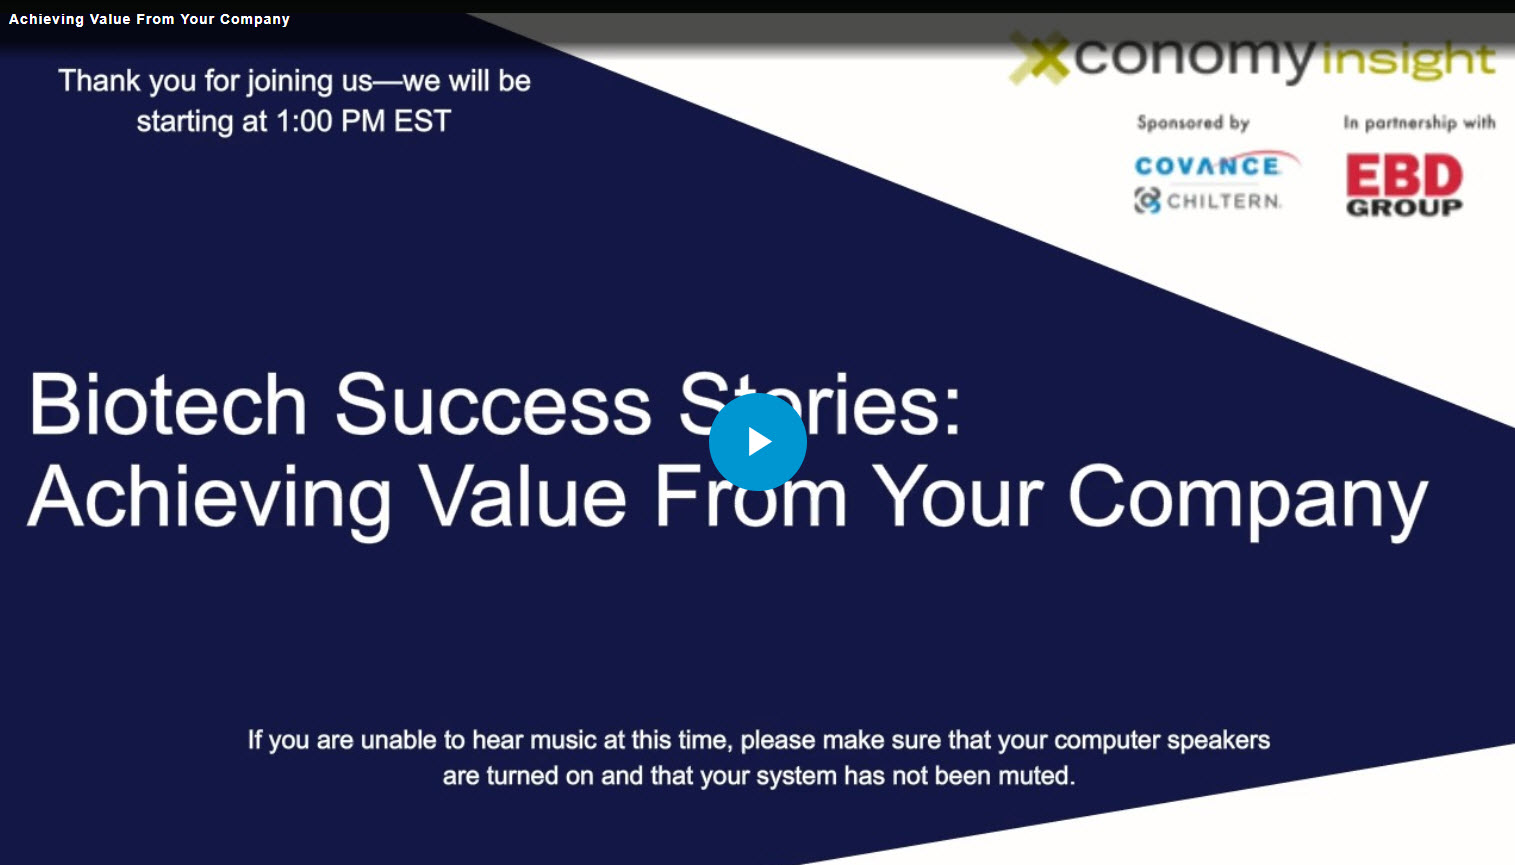 Achieving Value From Your Company